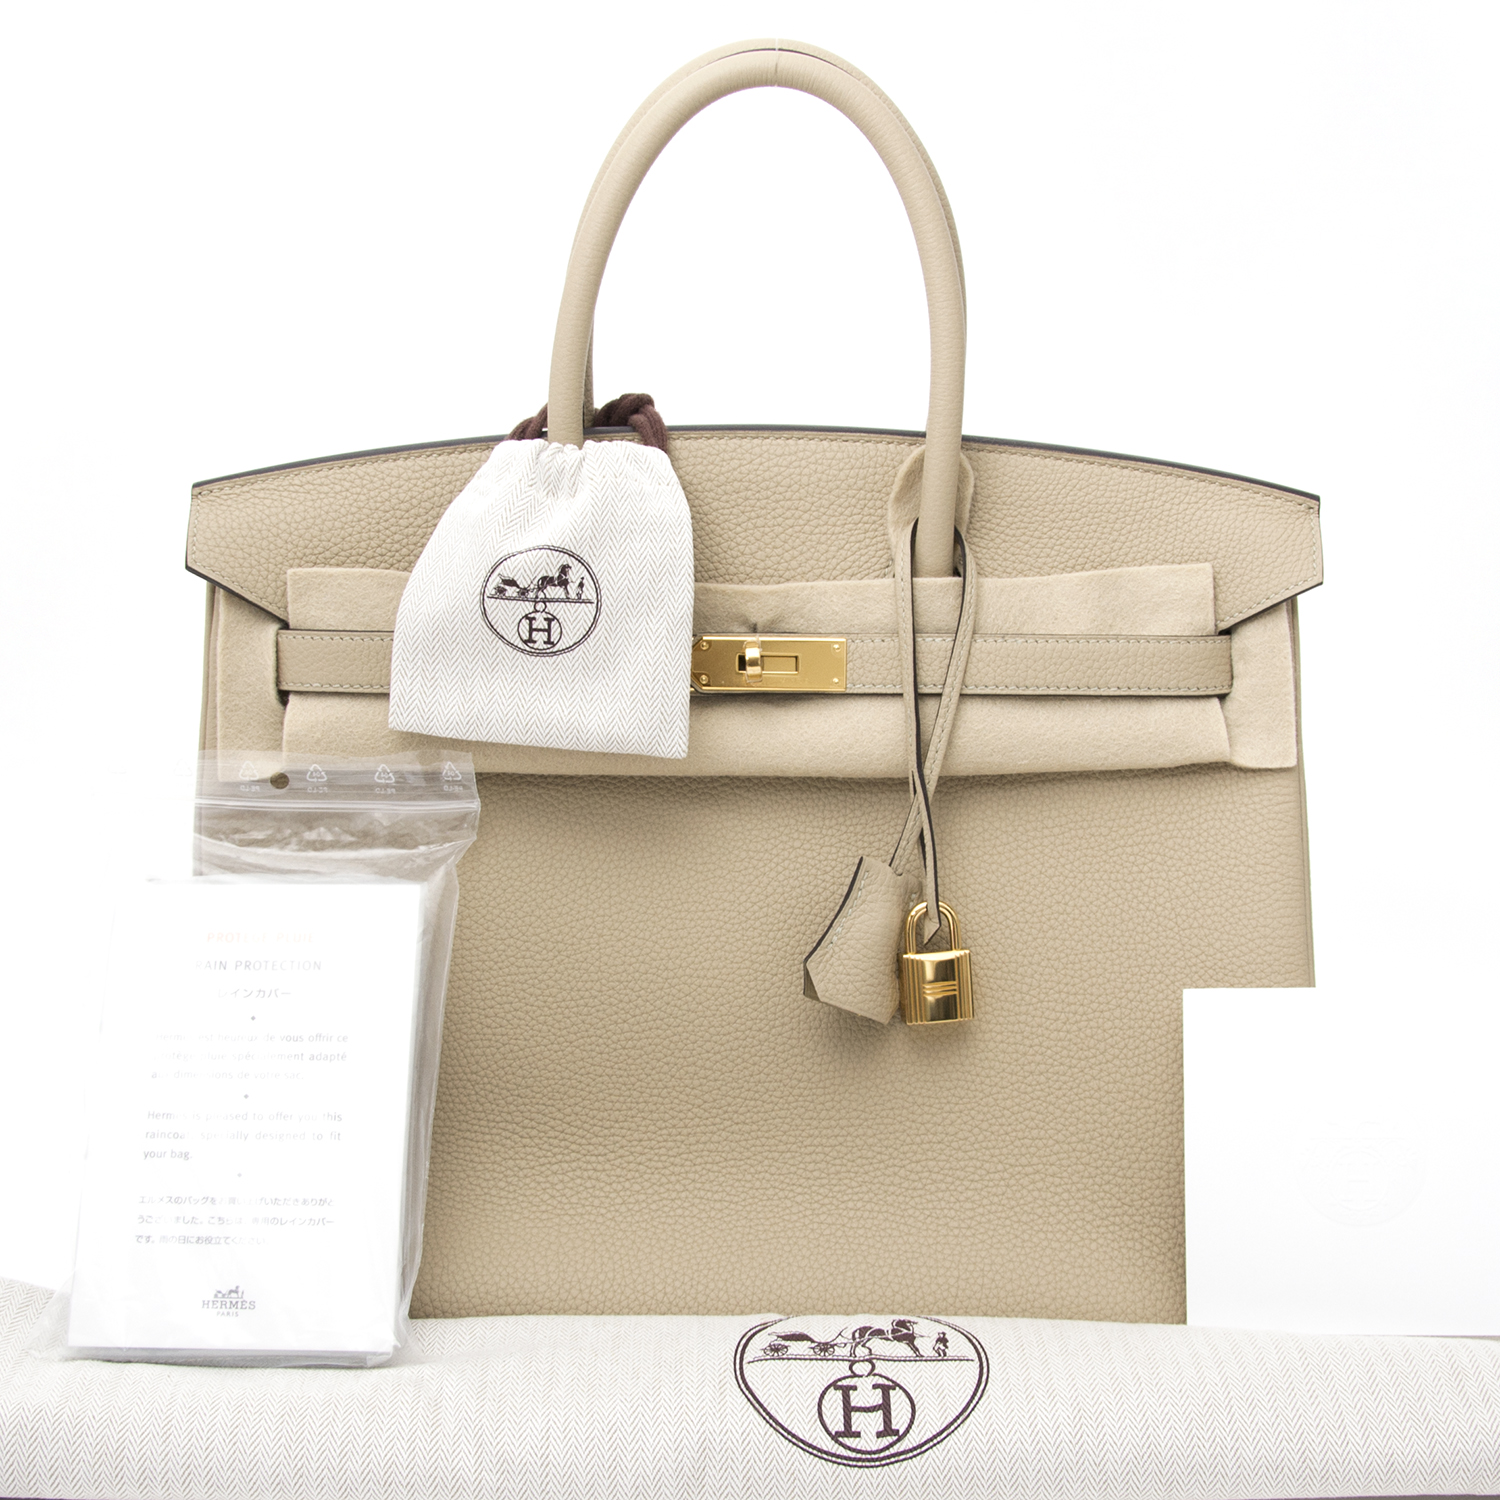 Hermès brand new christmas gift ? shop your desinger brand new Brand new Hermès Birkin 35 Trench Togo  at labellov.com